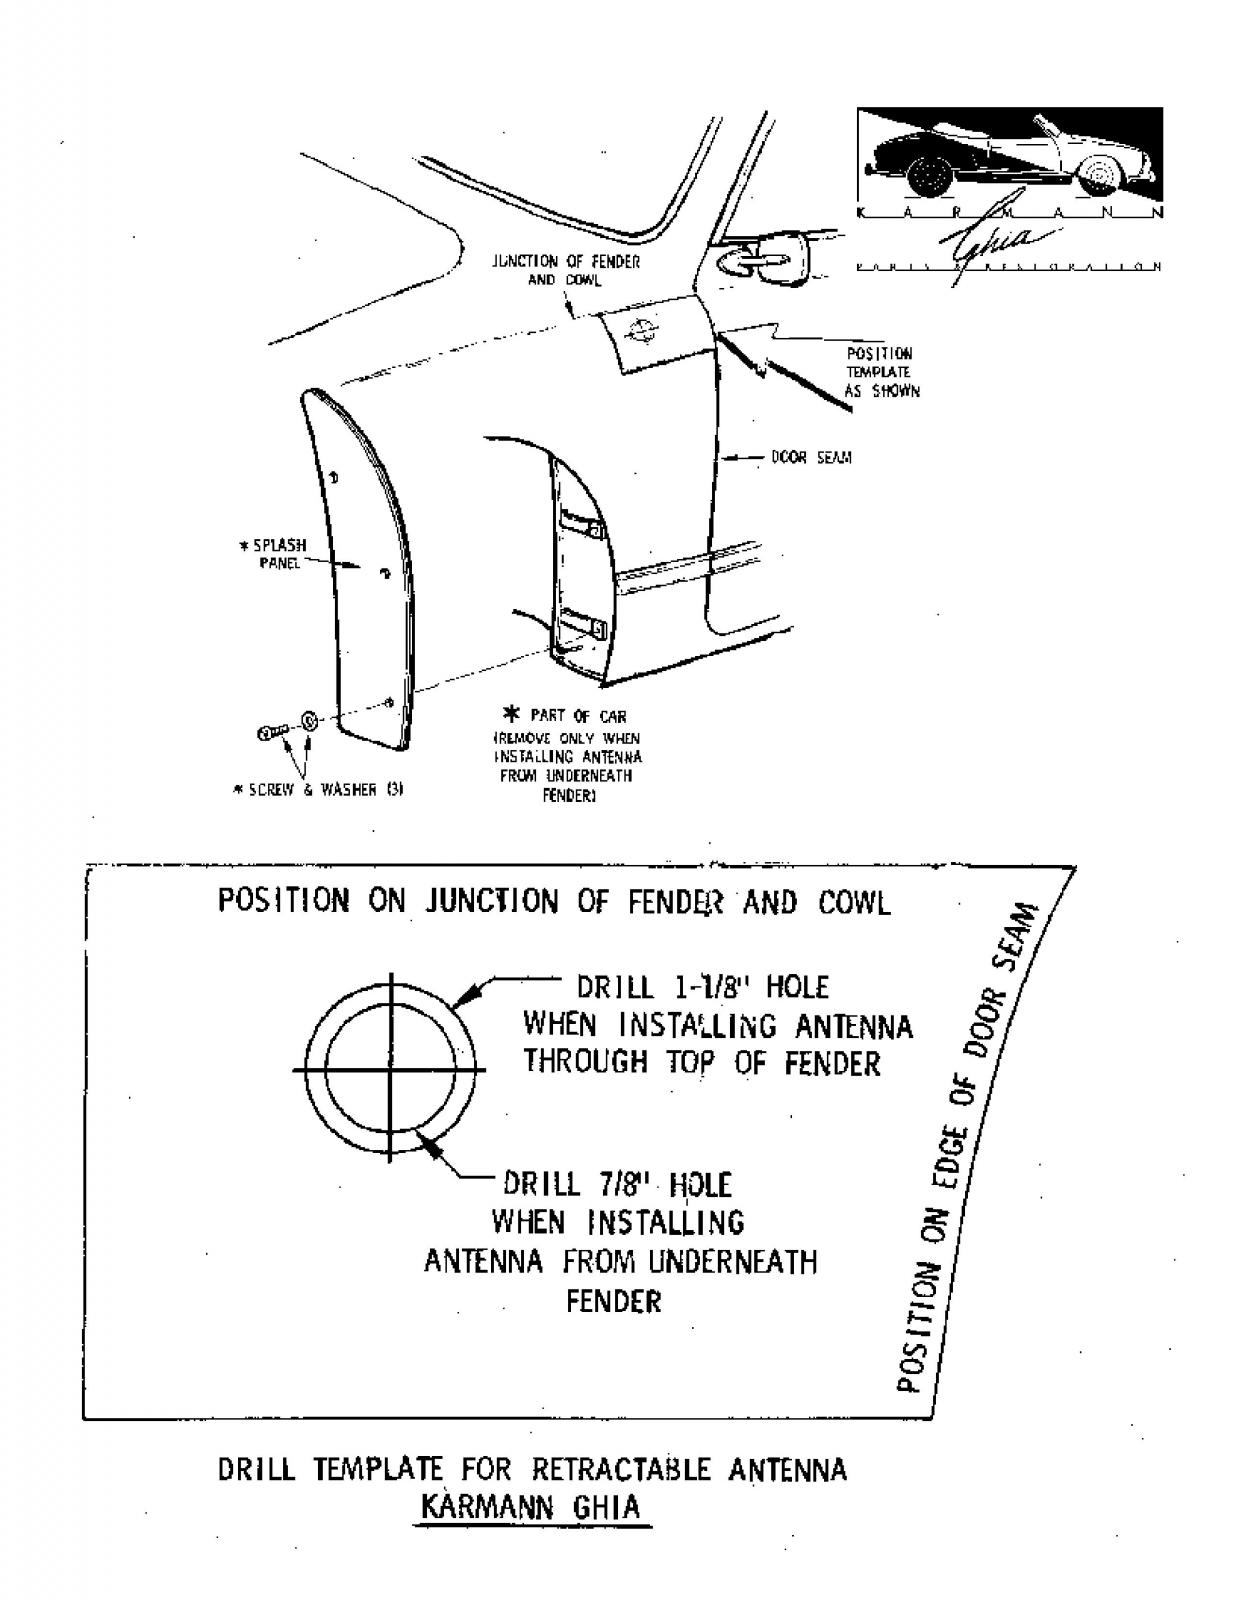 KGPR Ghia Antenna Placement Template